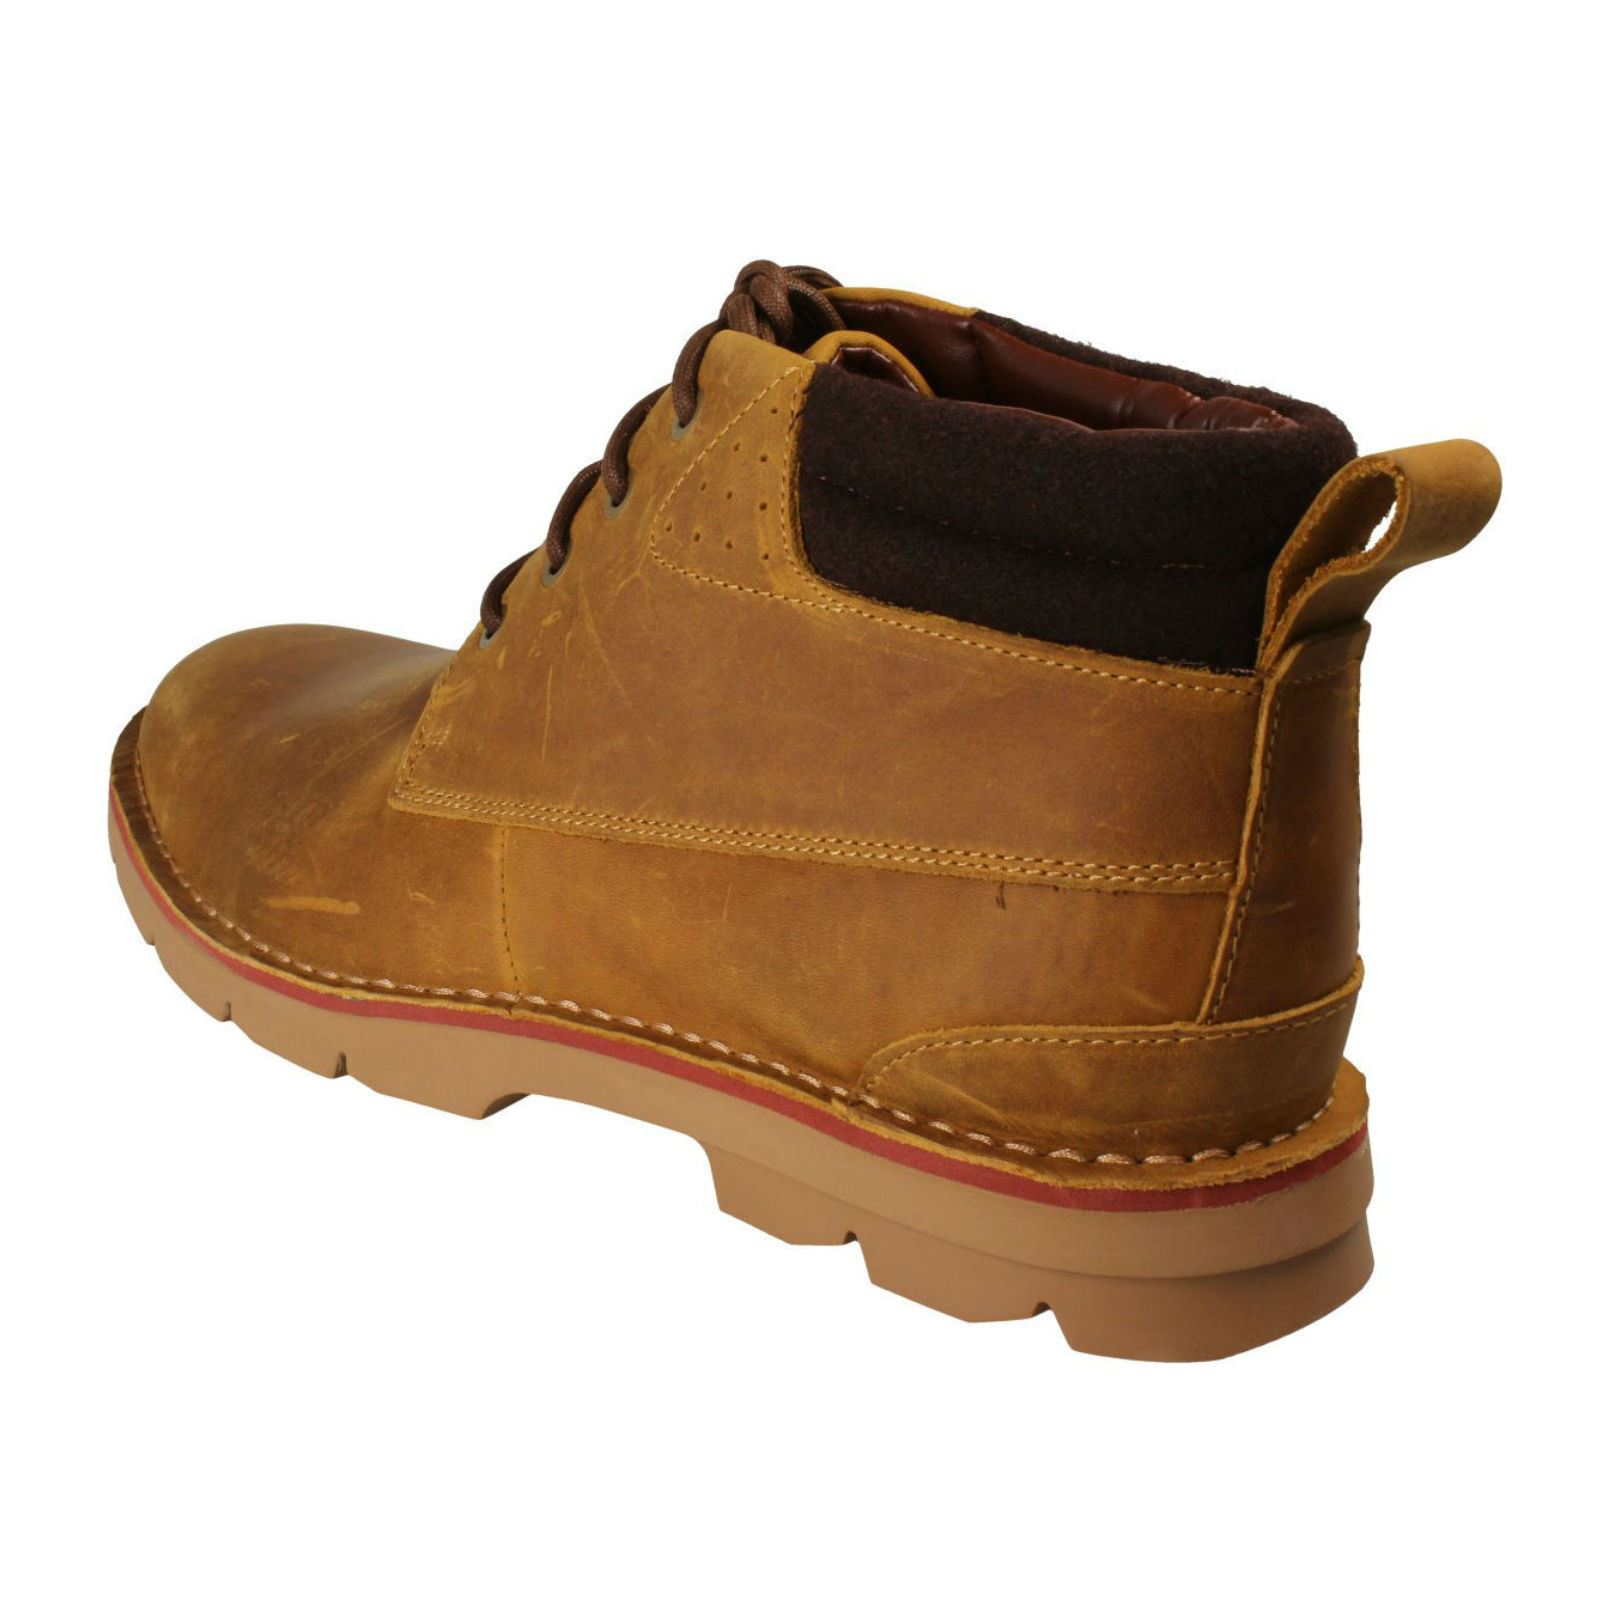 Mens-Clarks-Warm-Lined-Casual-Boots-039-Varick-Heal-039 thumbnail 13